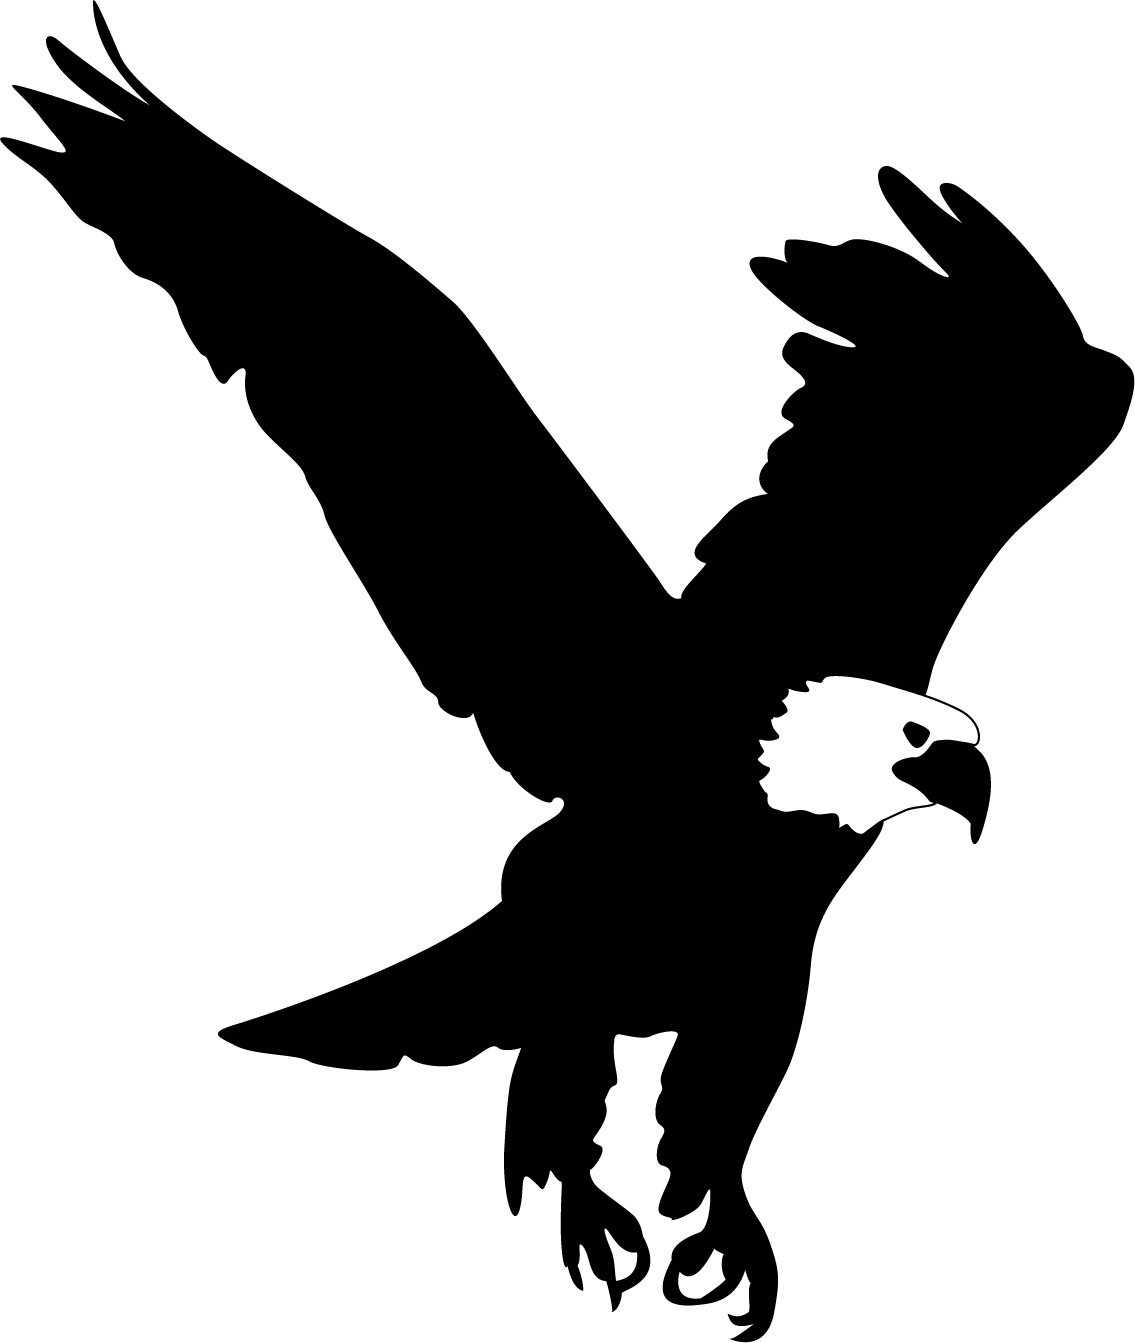 Wing clipart eagle. Silhouette at getdrawings com